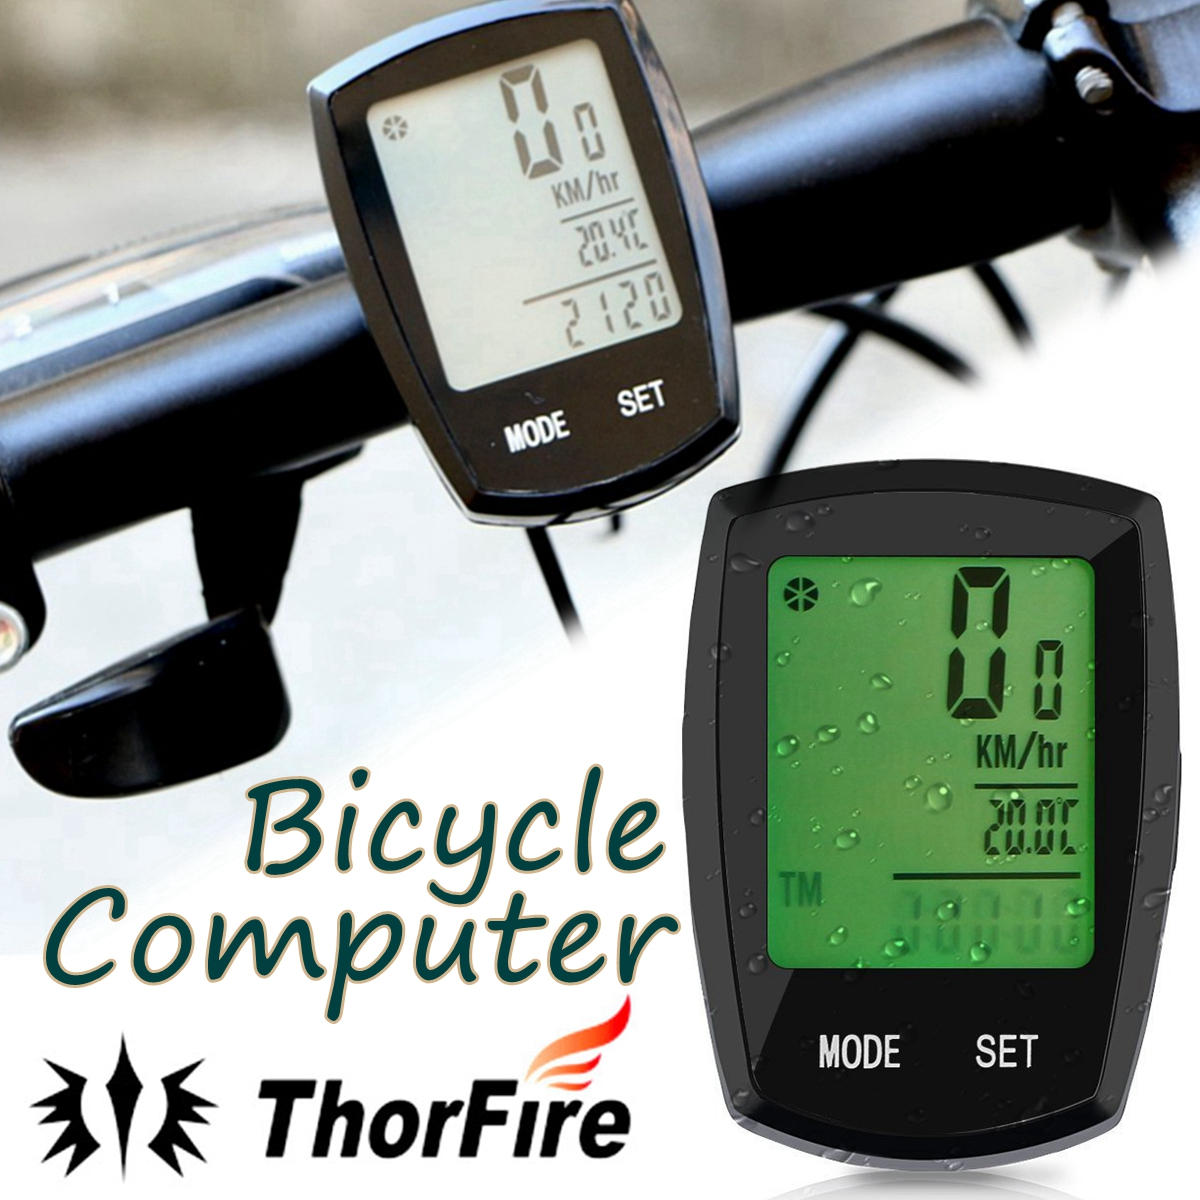 Wireless Day-Night 24 Functions Waterproof Cycling Computer,ThorFire Bike Computer Bicycle Speedometer Bike Odometer with Larger LCD Screen Display